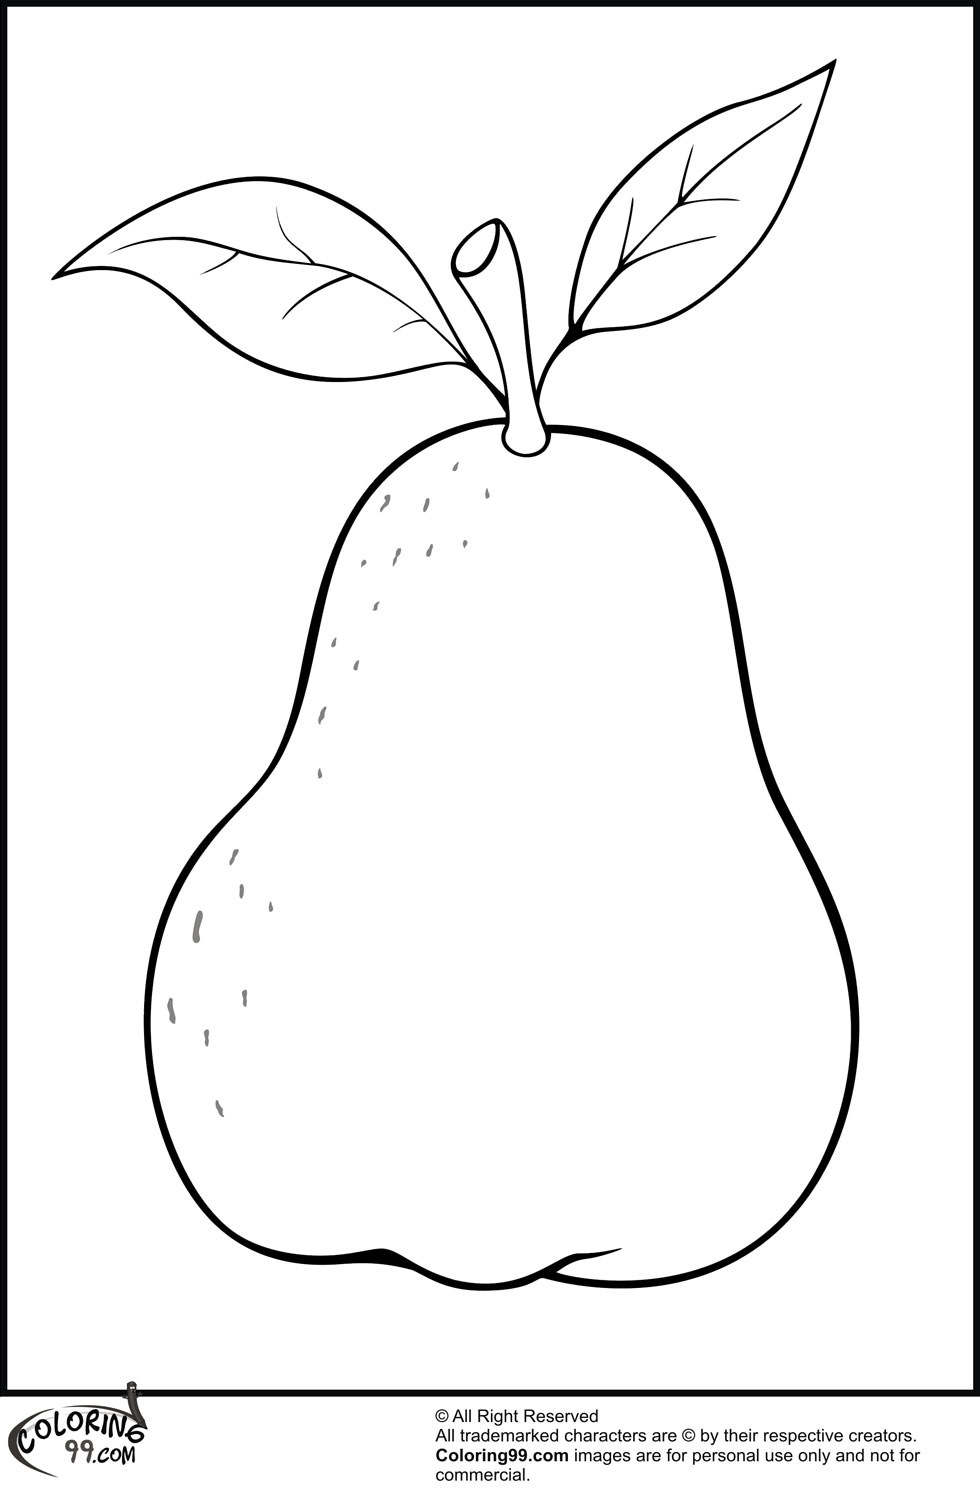 Pear Fruit Coloring Pages Pear Coloring Page